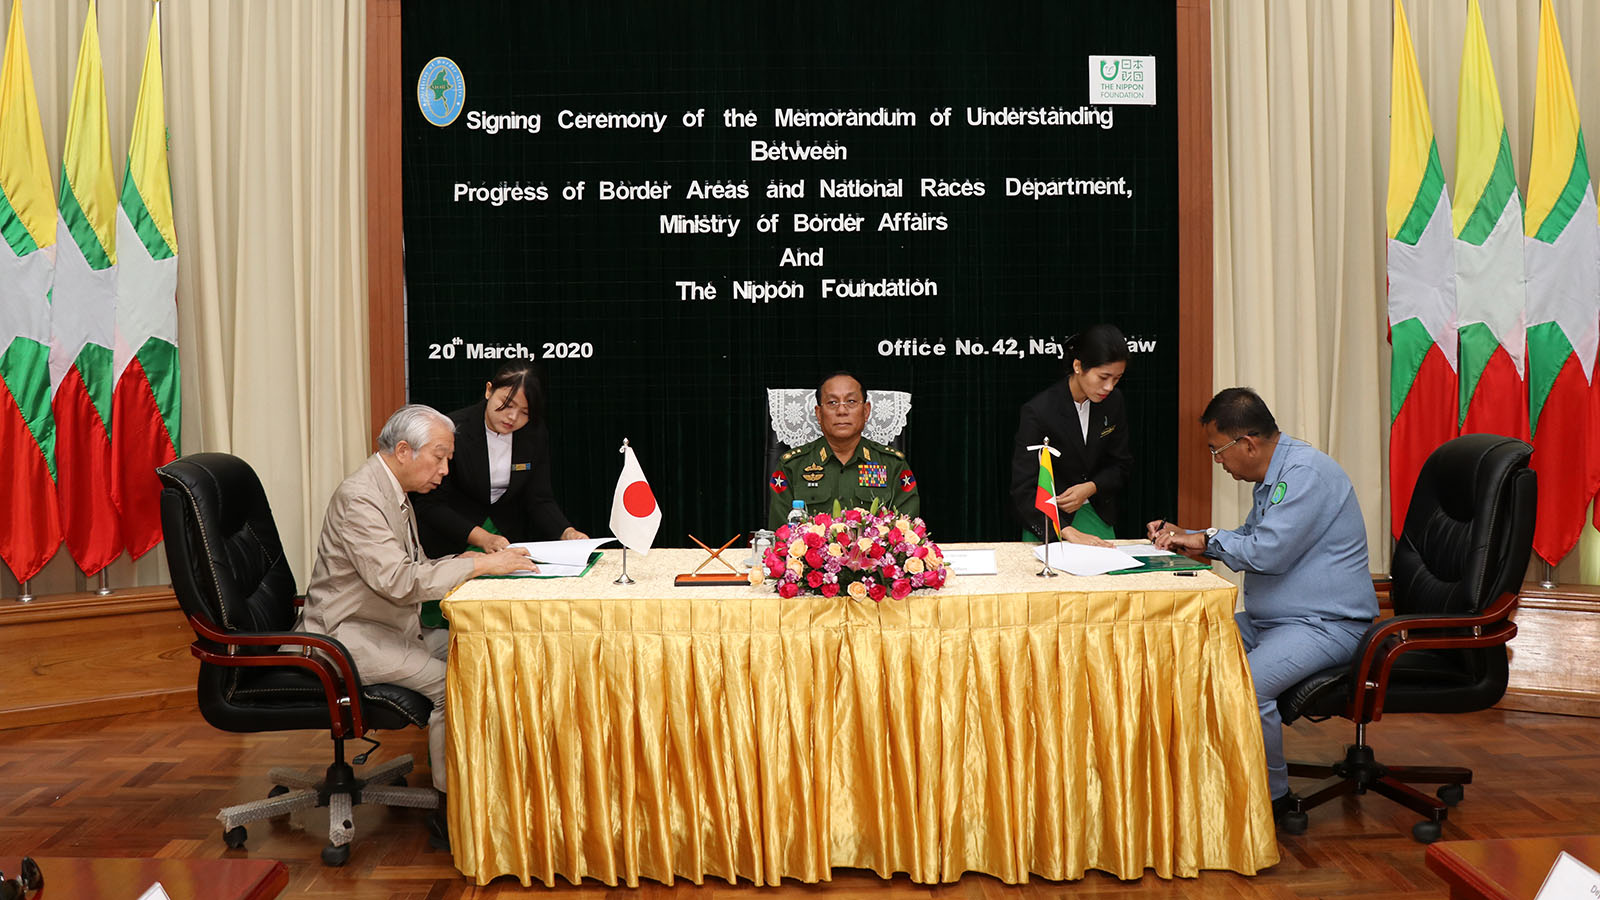 Director-General U Ye Naing of rogress of Border Areas and National Races Department and Mr Yuji Mori signing the MoU documents in Nay Pyi Taw yesterday.Photo: MNA